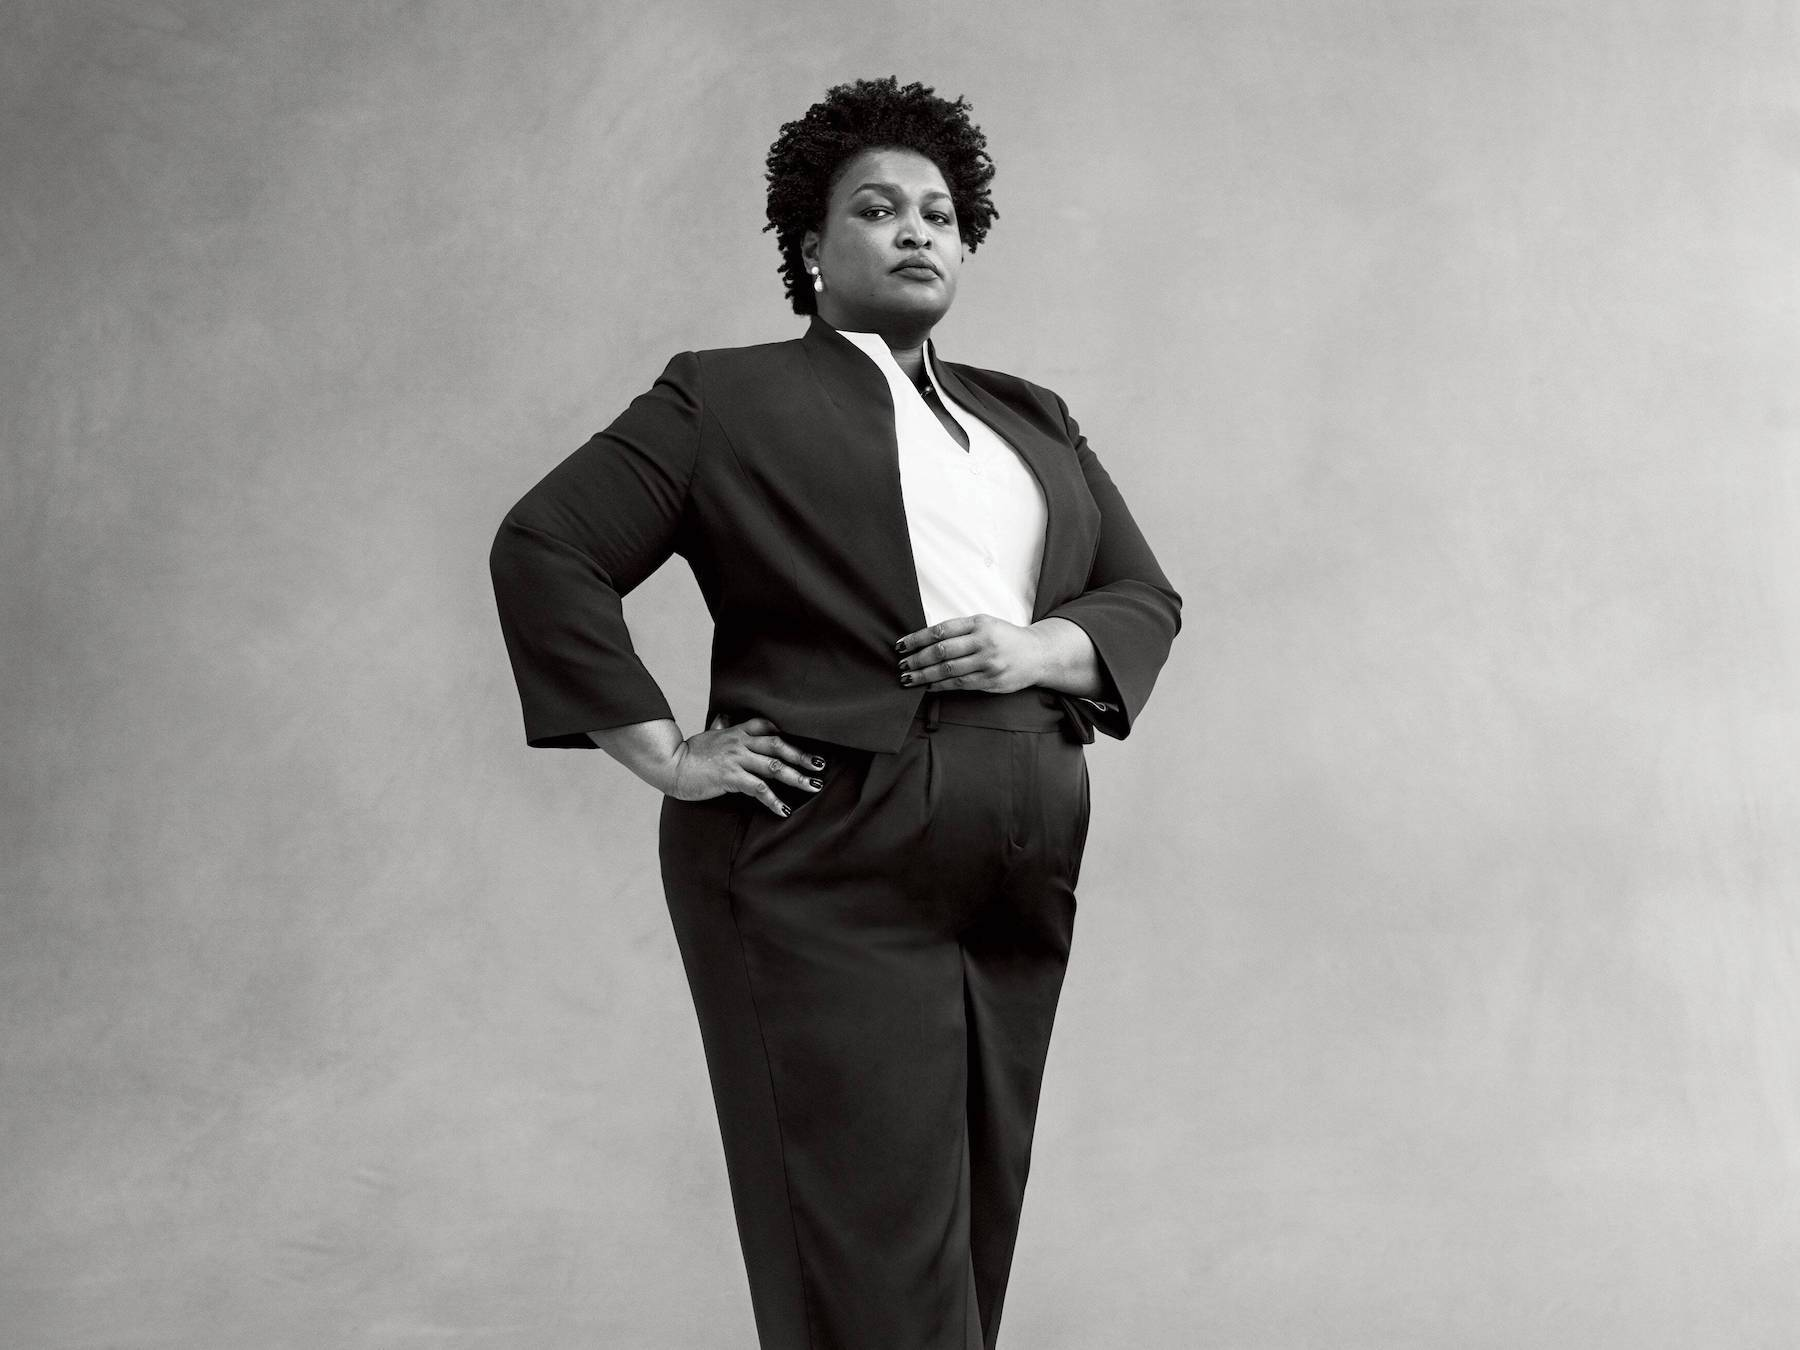 Stacey Abrams in a black and white portrait. Photo by Ethan James Green in September 2019 for Vogue.